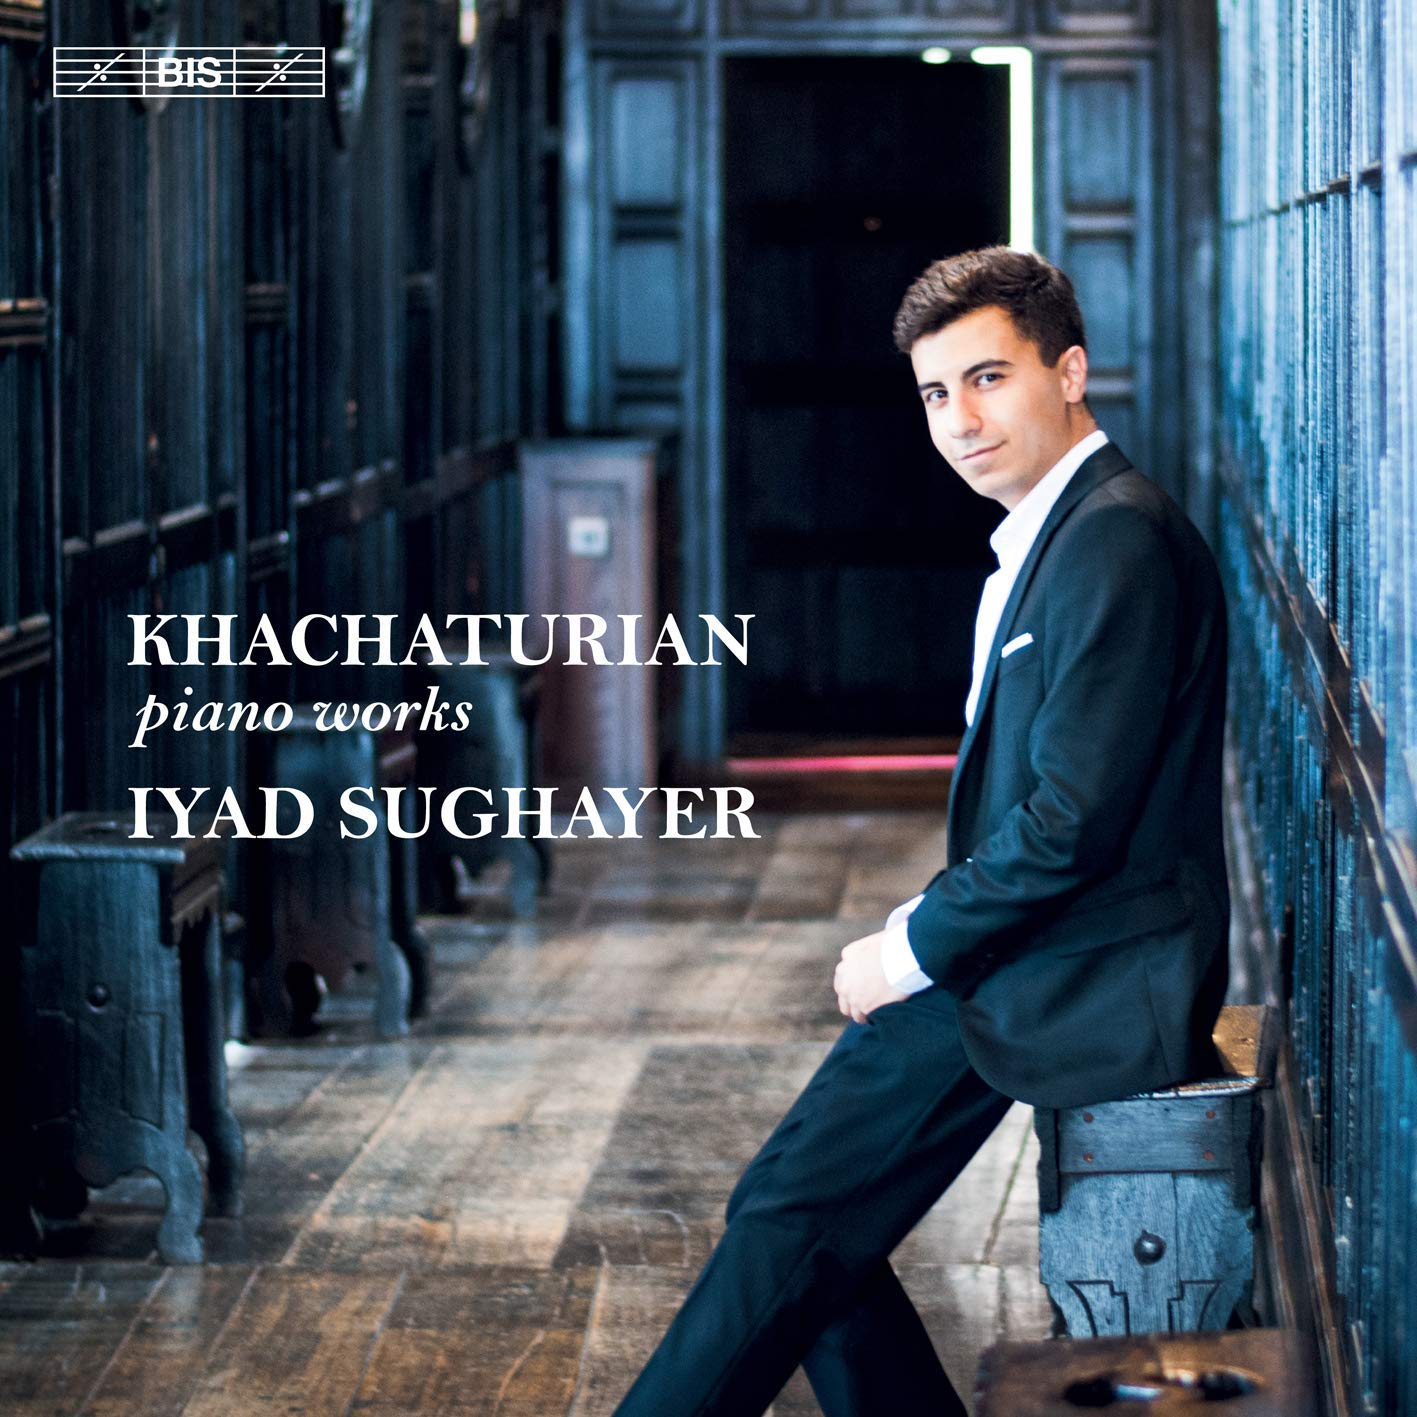 Review of KHACHATURIAN Piano Works (Iyad Sughayer)